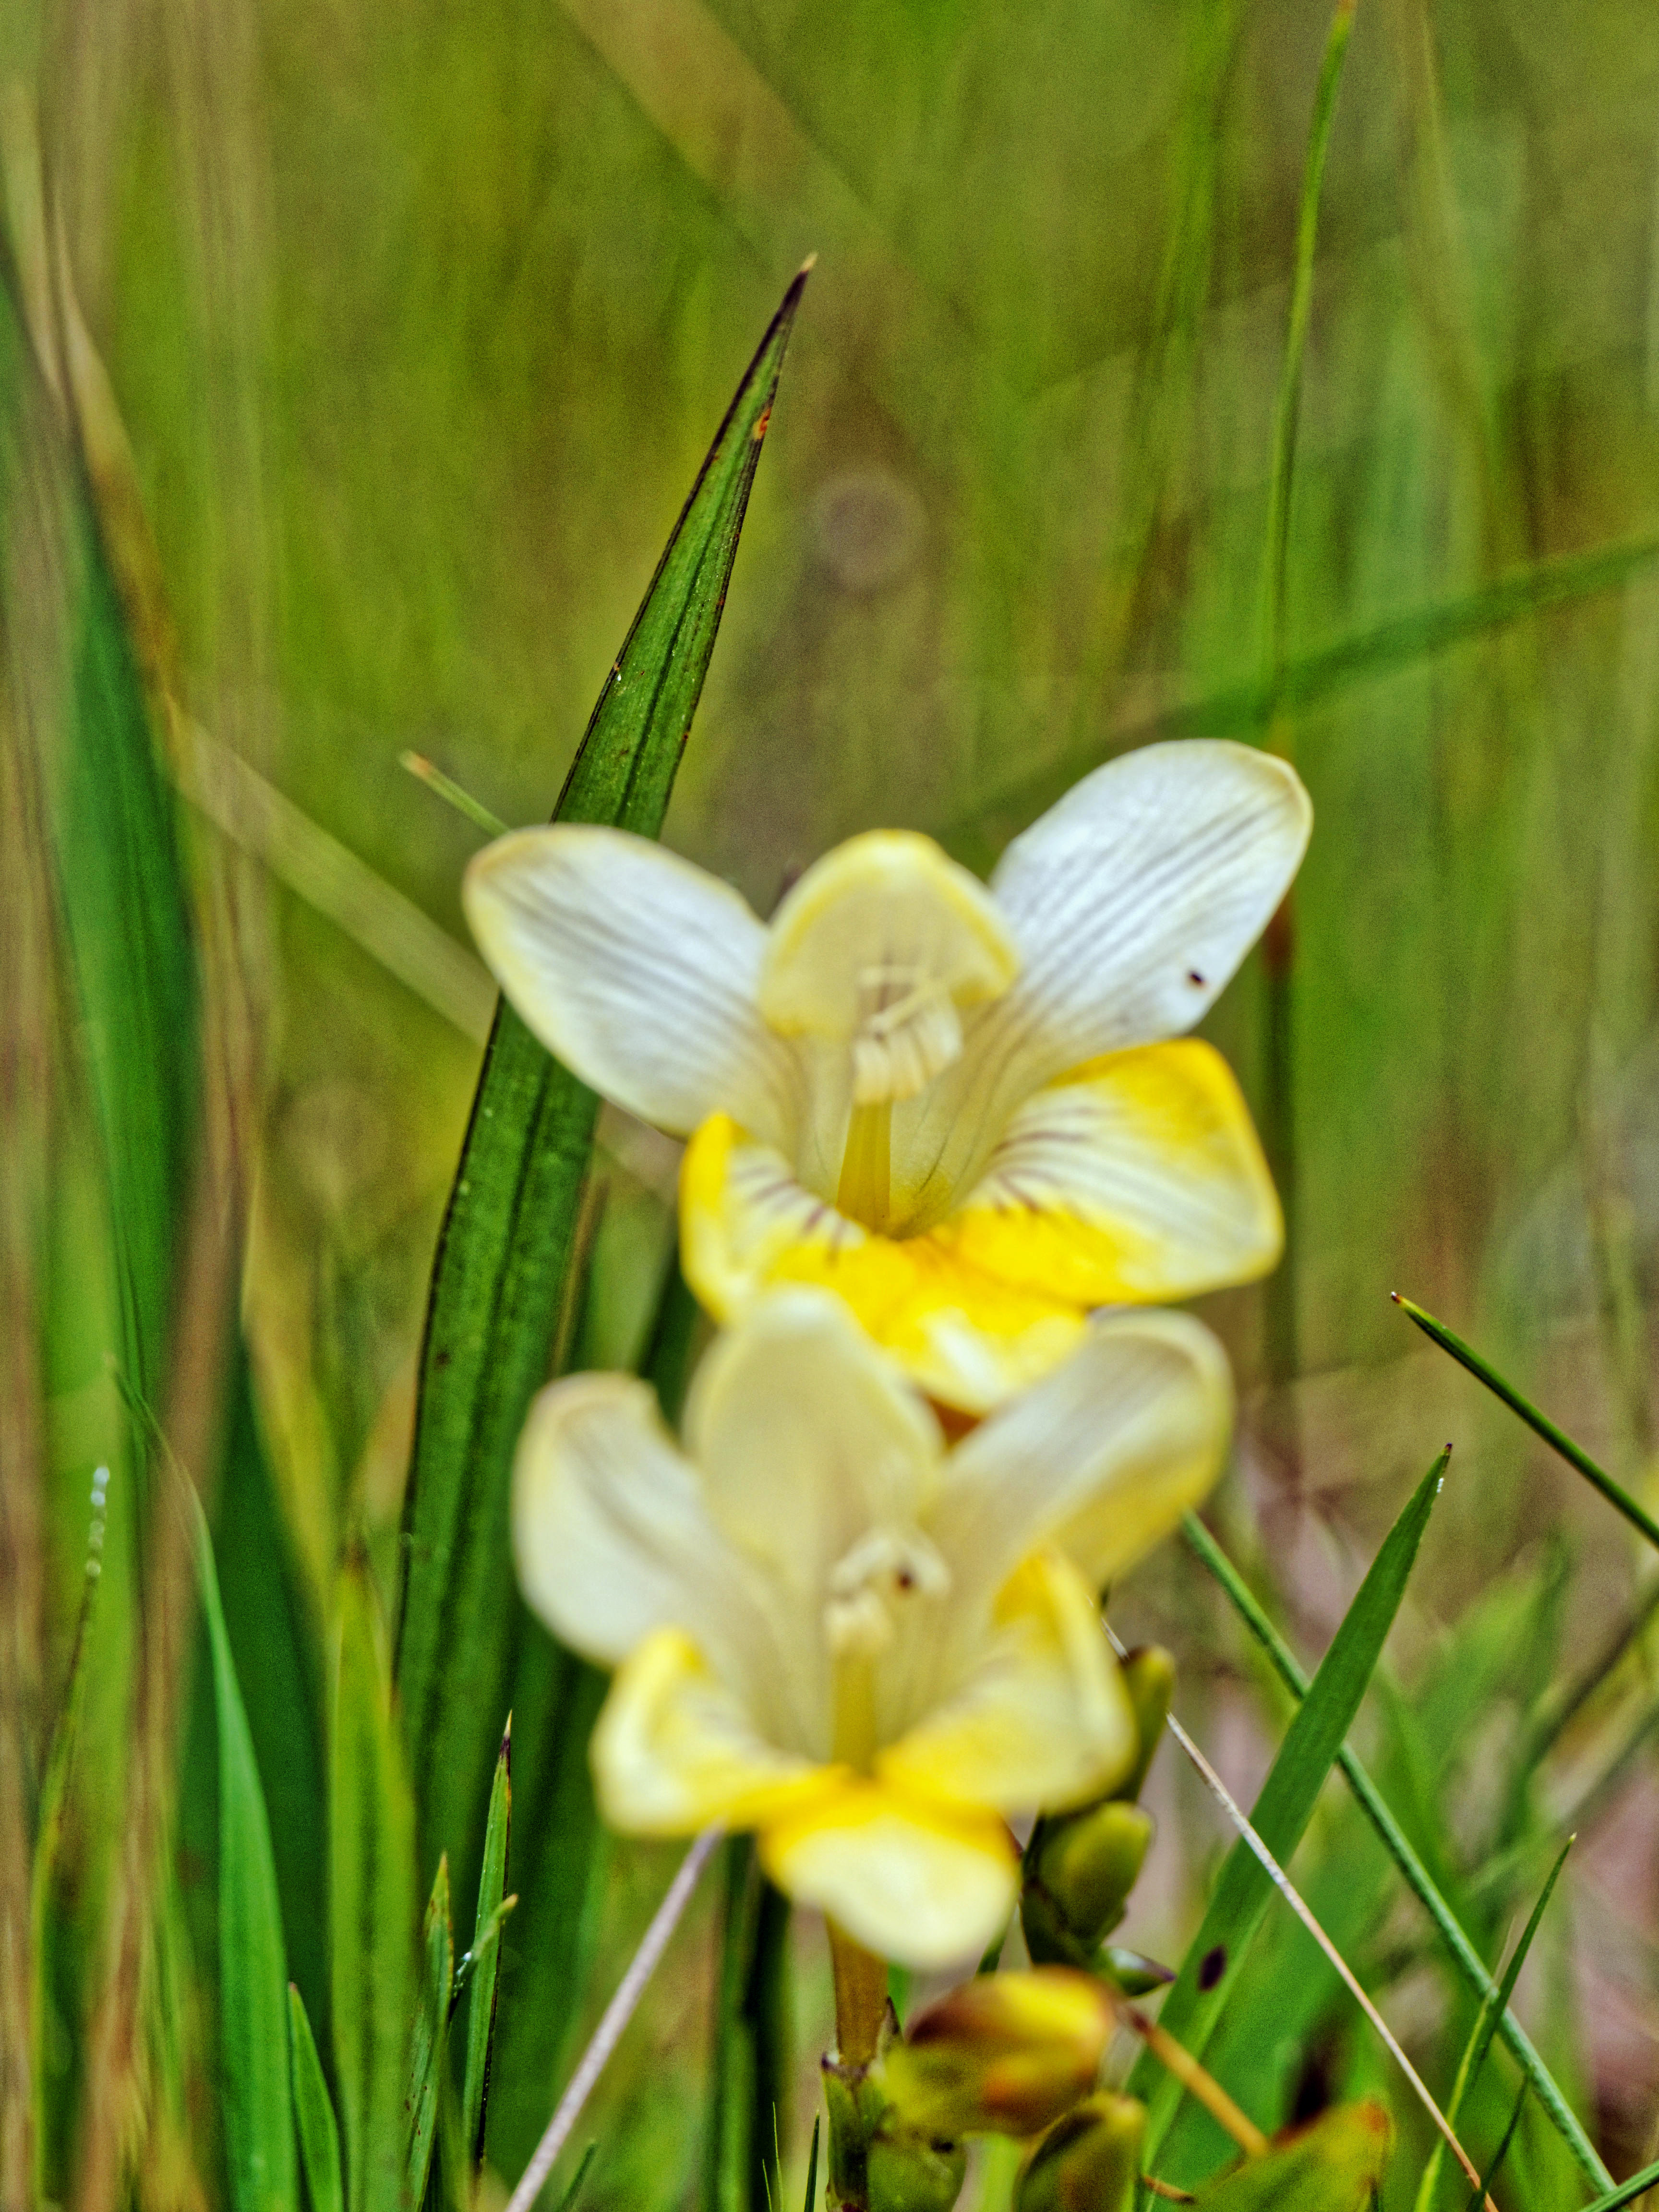 This should be Freesia-refracta-6.jpeg.  Is it missing?